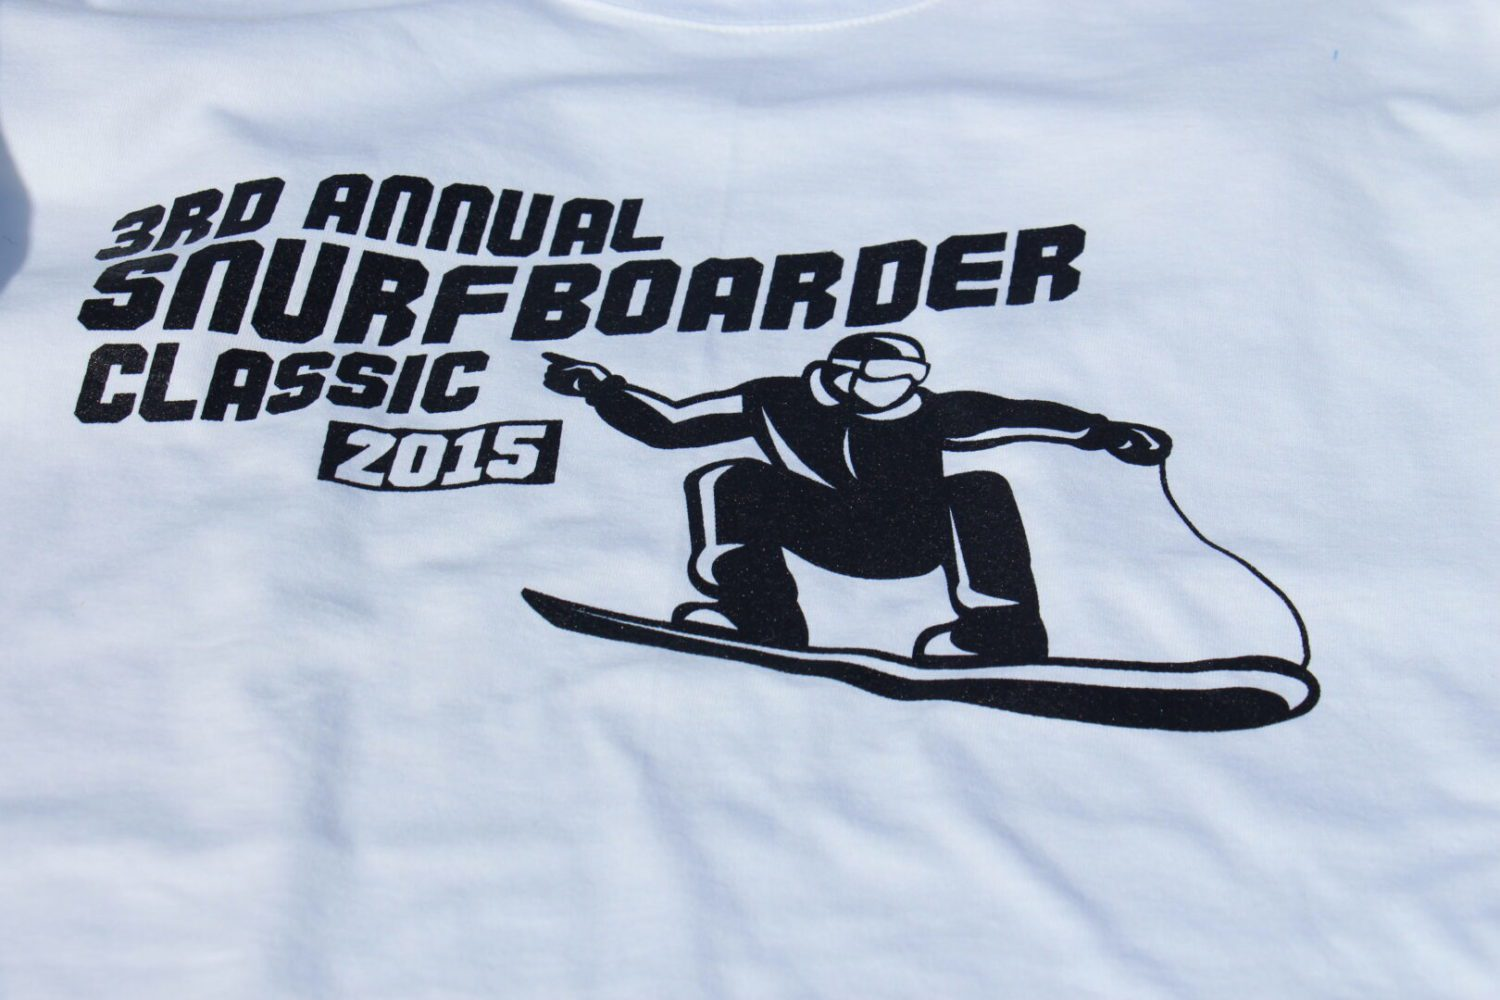 Snurfboarder Classic a hit on the slopes of Mulligan's Hollow in Grand Haven [VIDEO]